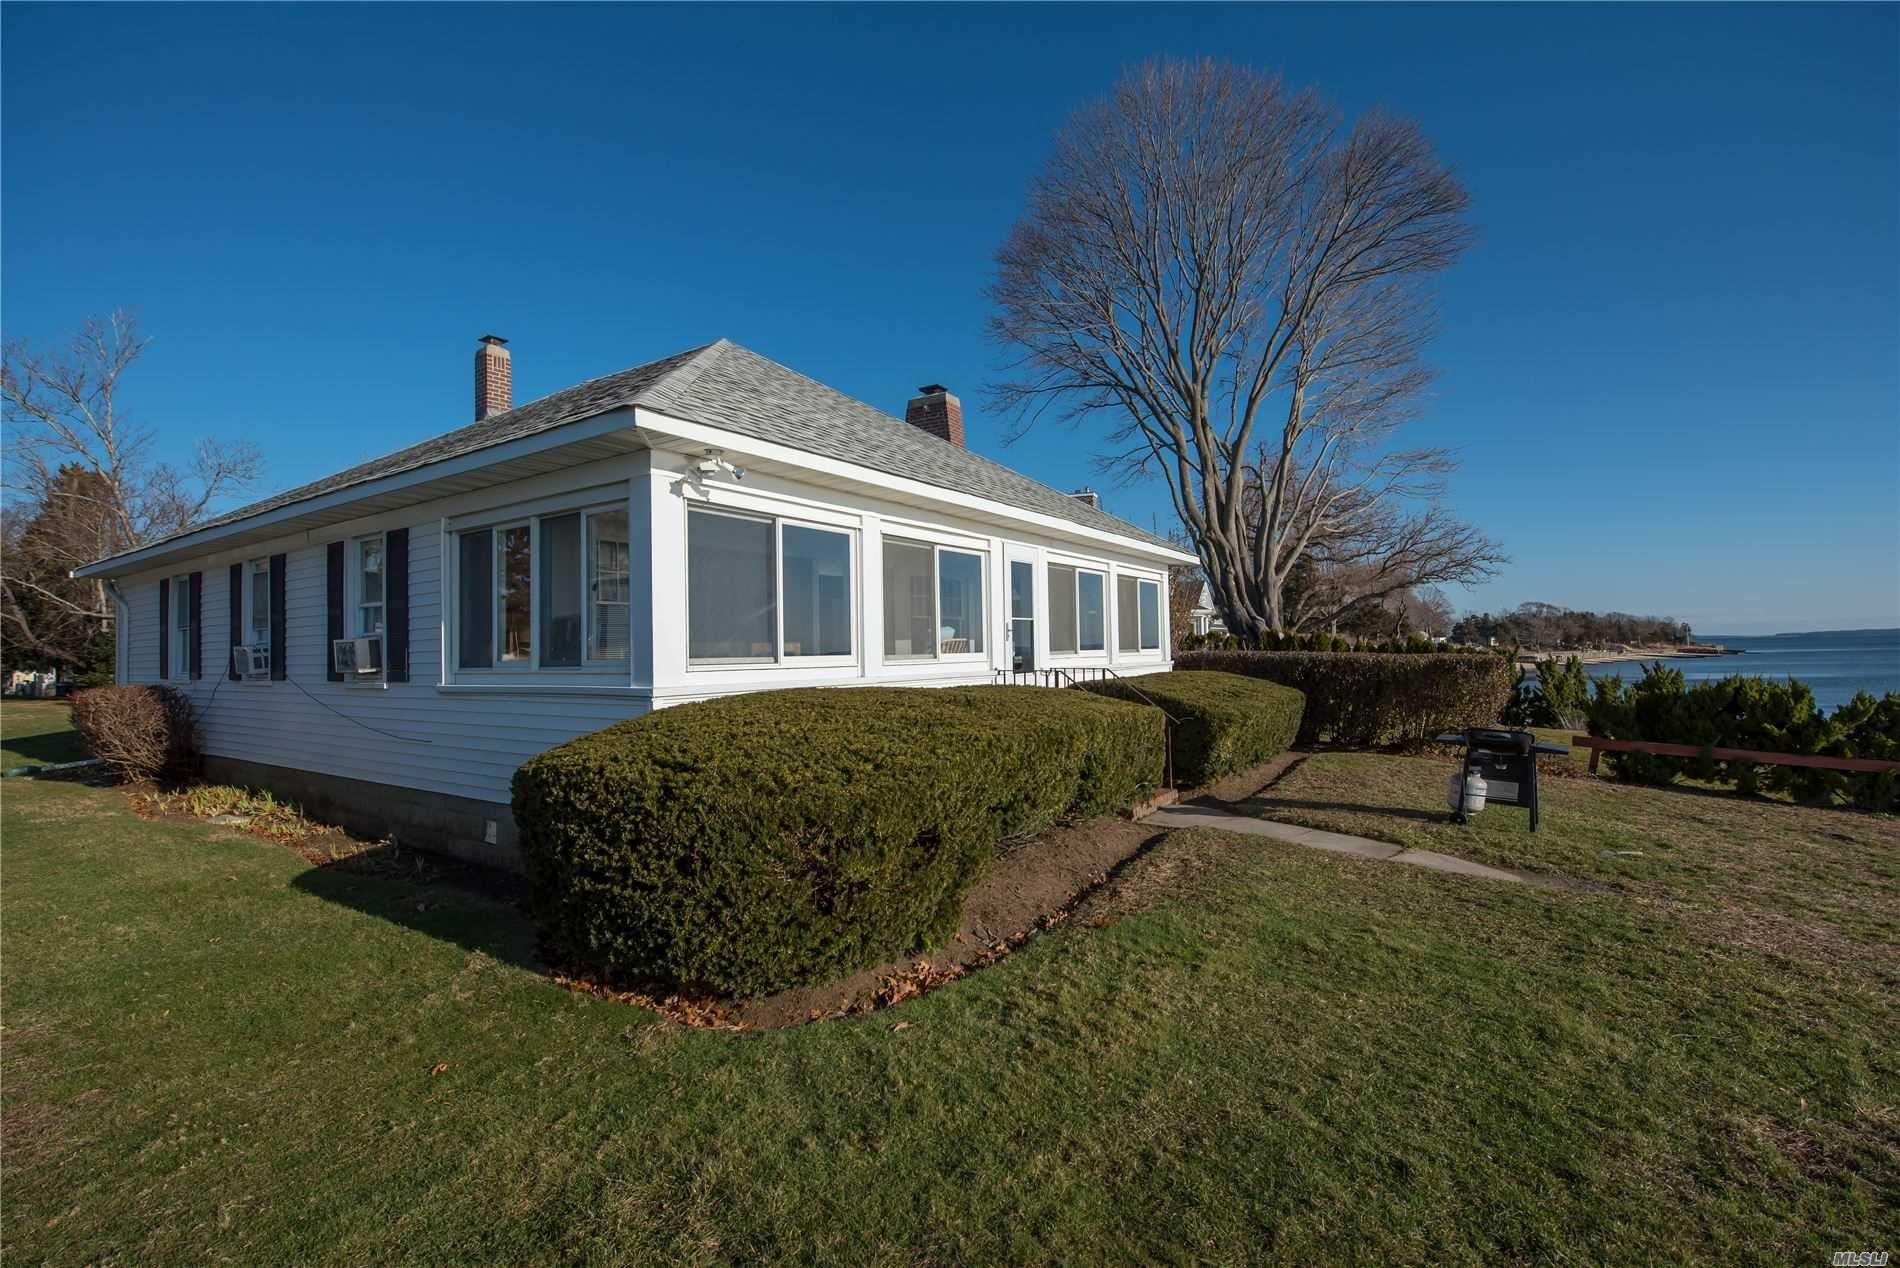 1400 Peconic Bay Boulevard, Jamesport, NY 11947 - MLS#: 3138824